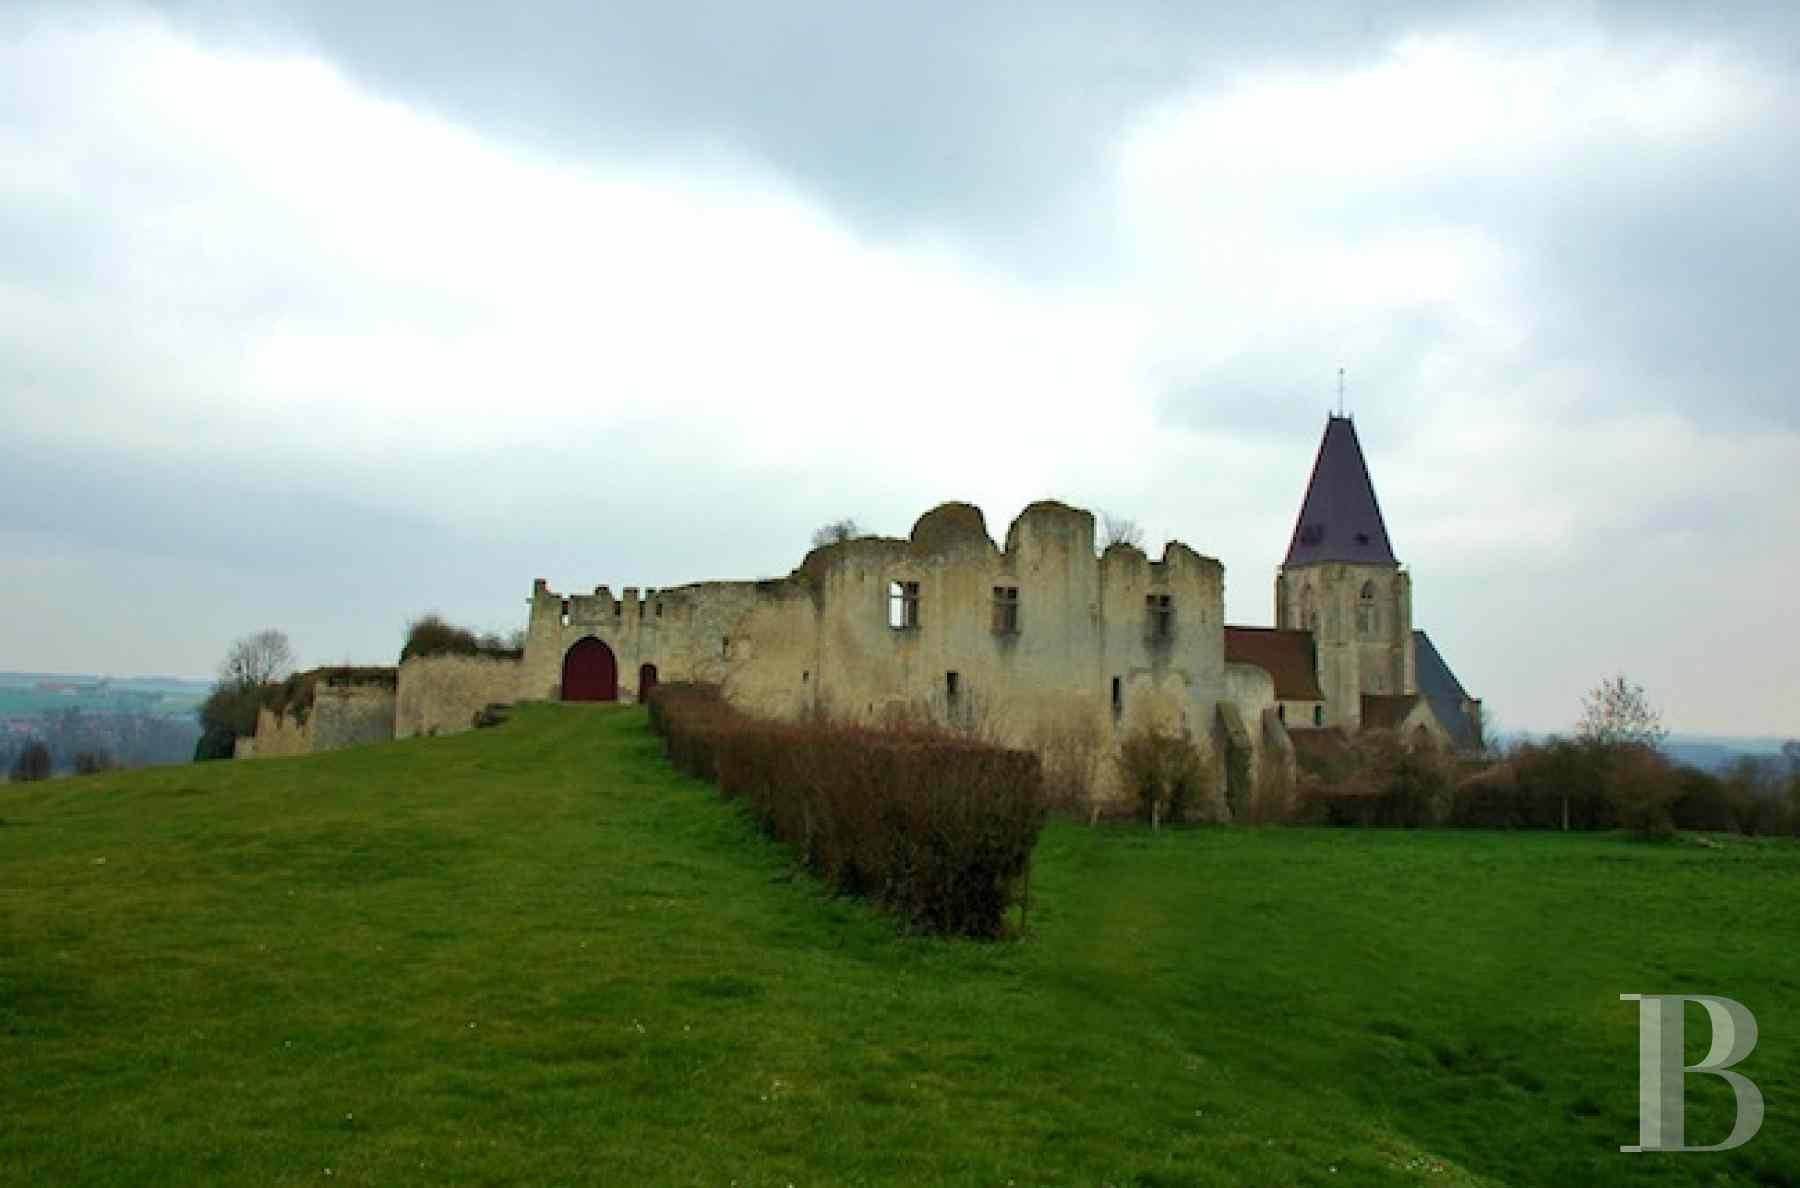 castles for sale France picardy historic buildings - 1 zoom